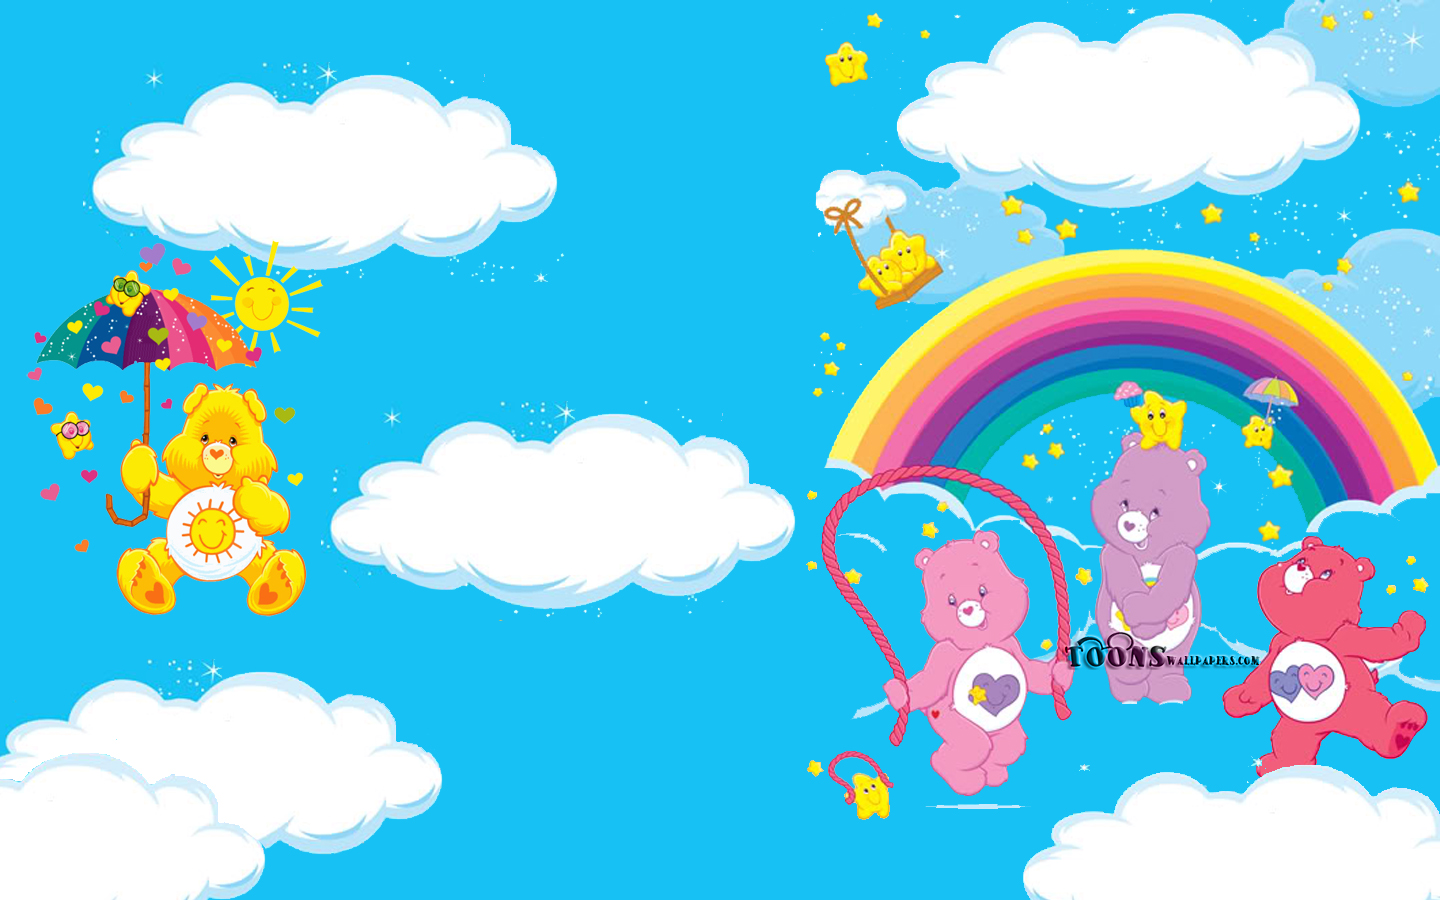 2560x1024 Hd Wallpaper The Care Bears 壁纸 And 背景 1440x900 Id 491798